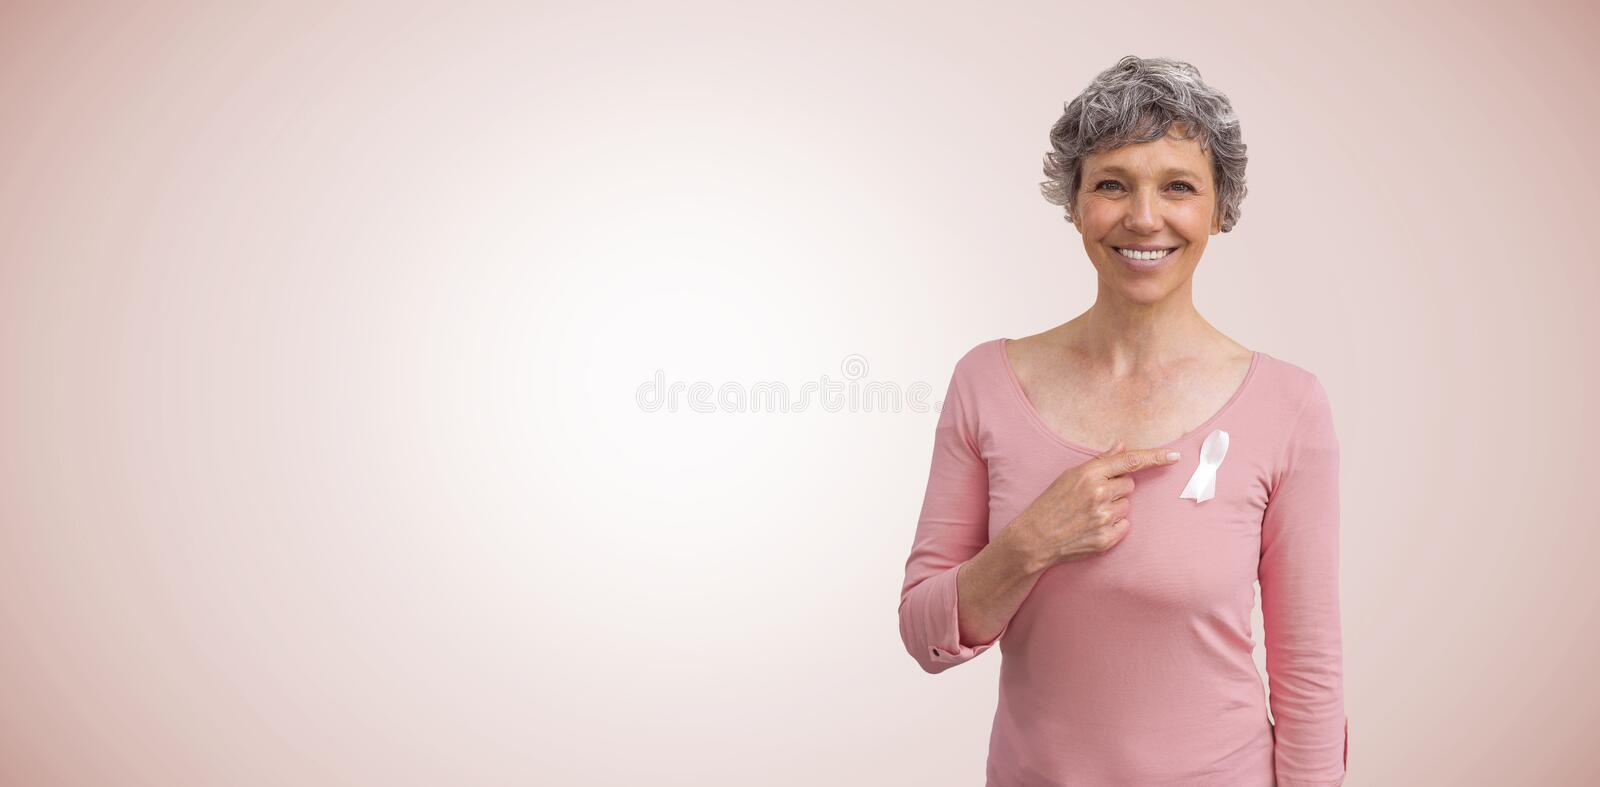 Composite image of woman in pink outfits showing ribbon for breast cancer awareness stock photos